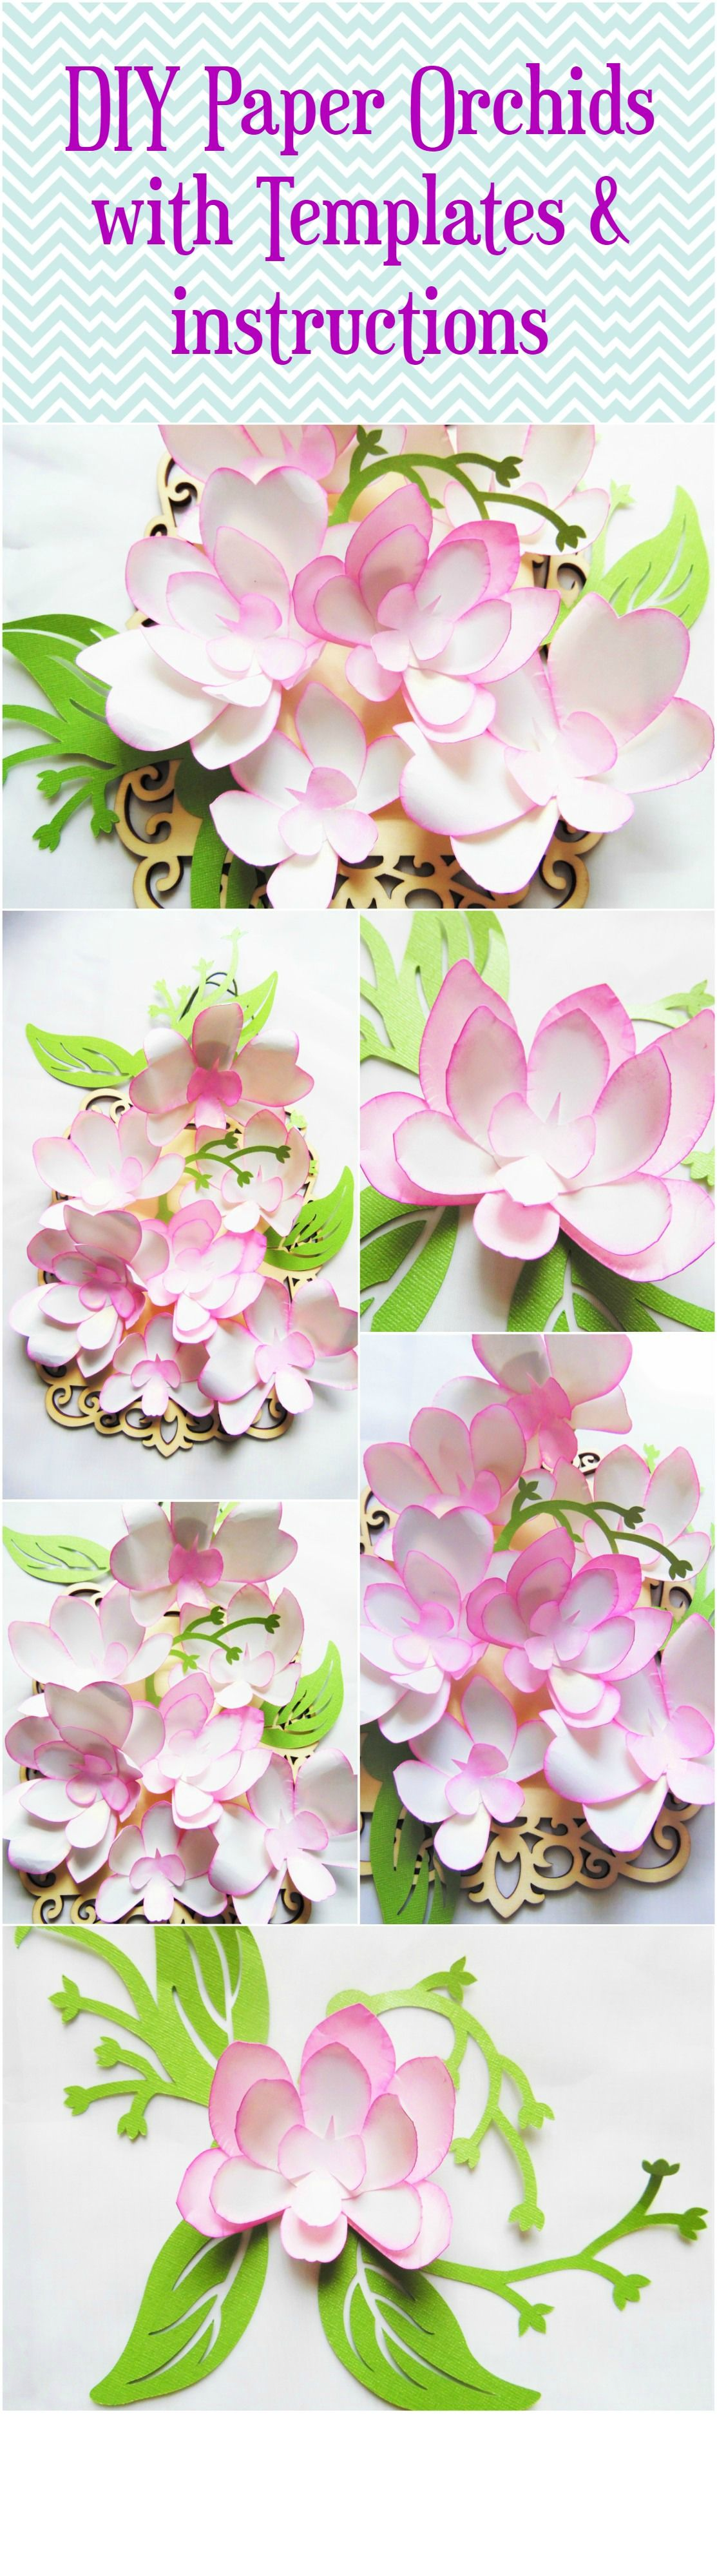 Diy paper flowers diy orchid paper flower templates wedding diy paper flowers diy orchid paper flower templates wedding orchid paper dhlflorist Choice Image